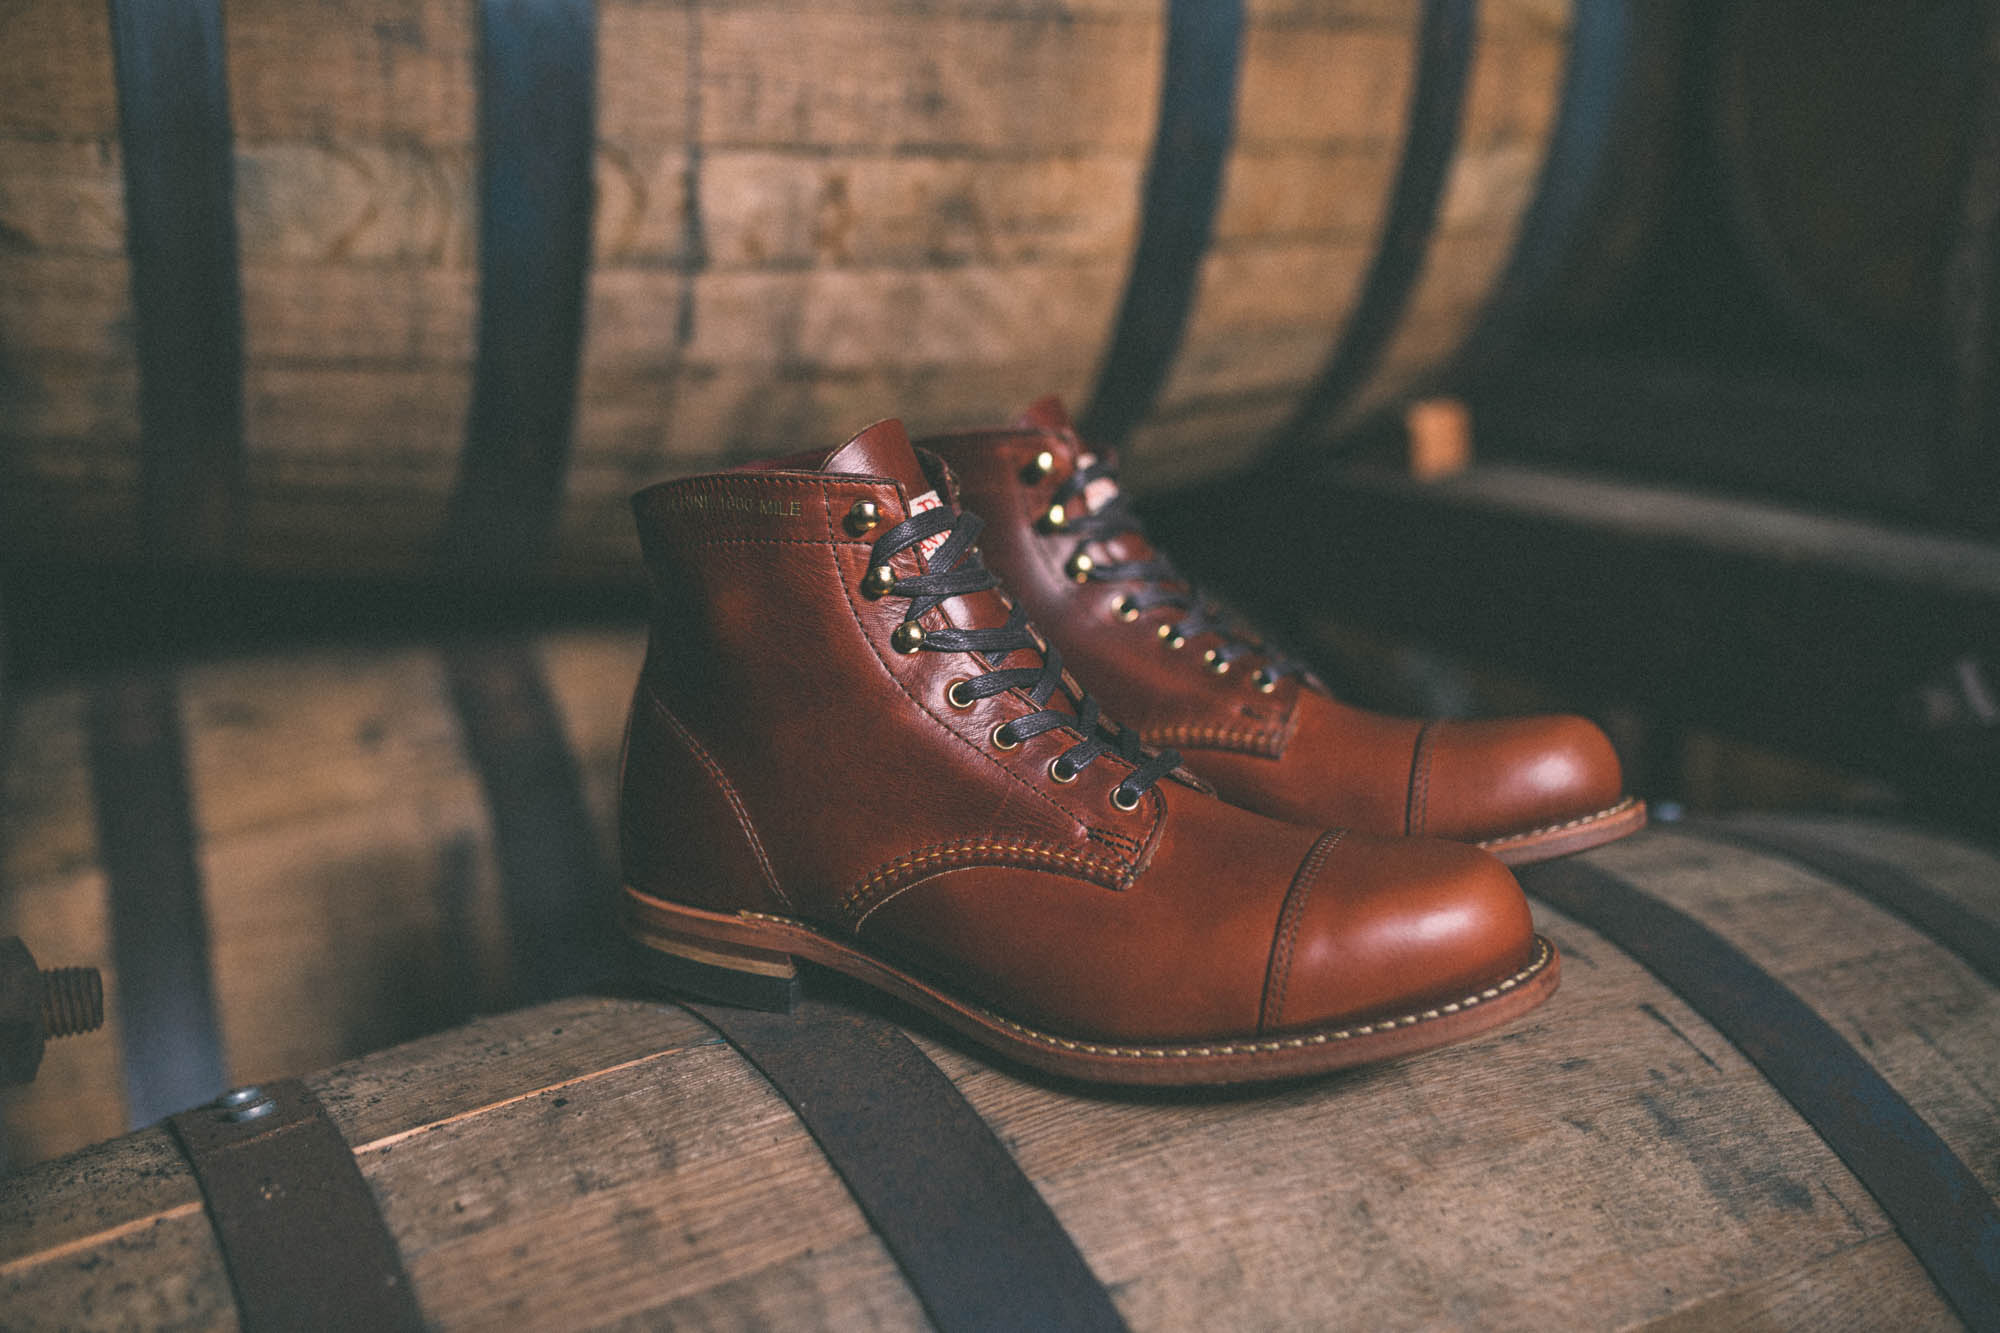 Wolverine x Old Rip Van Winkle Collaboration Boot